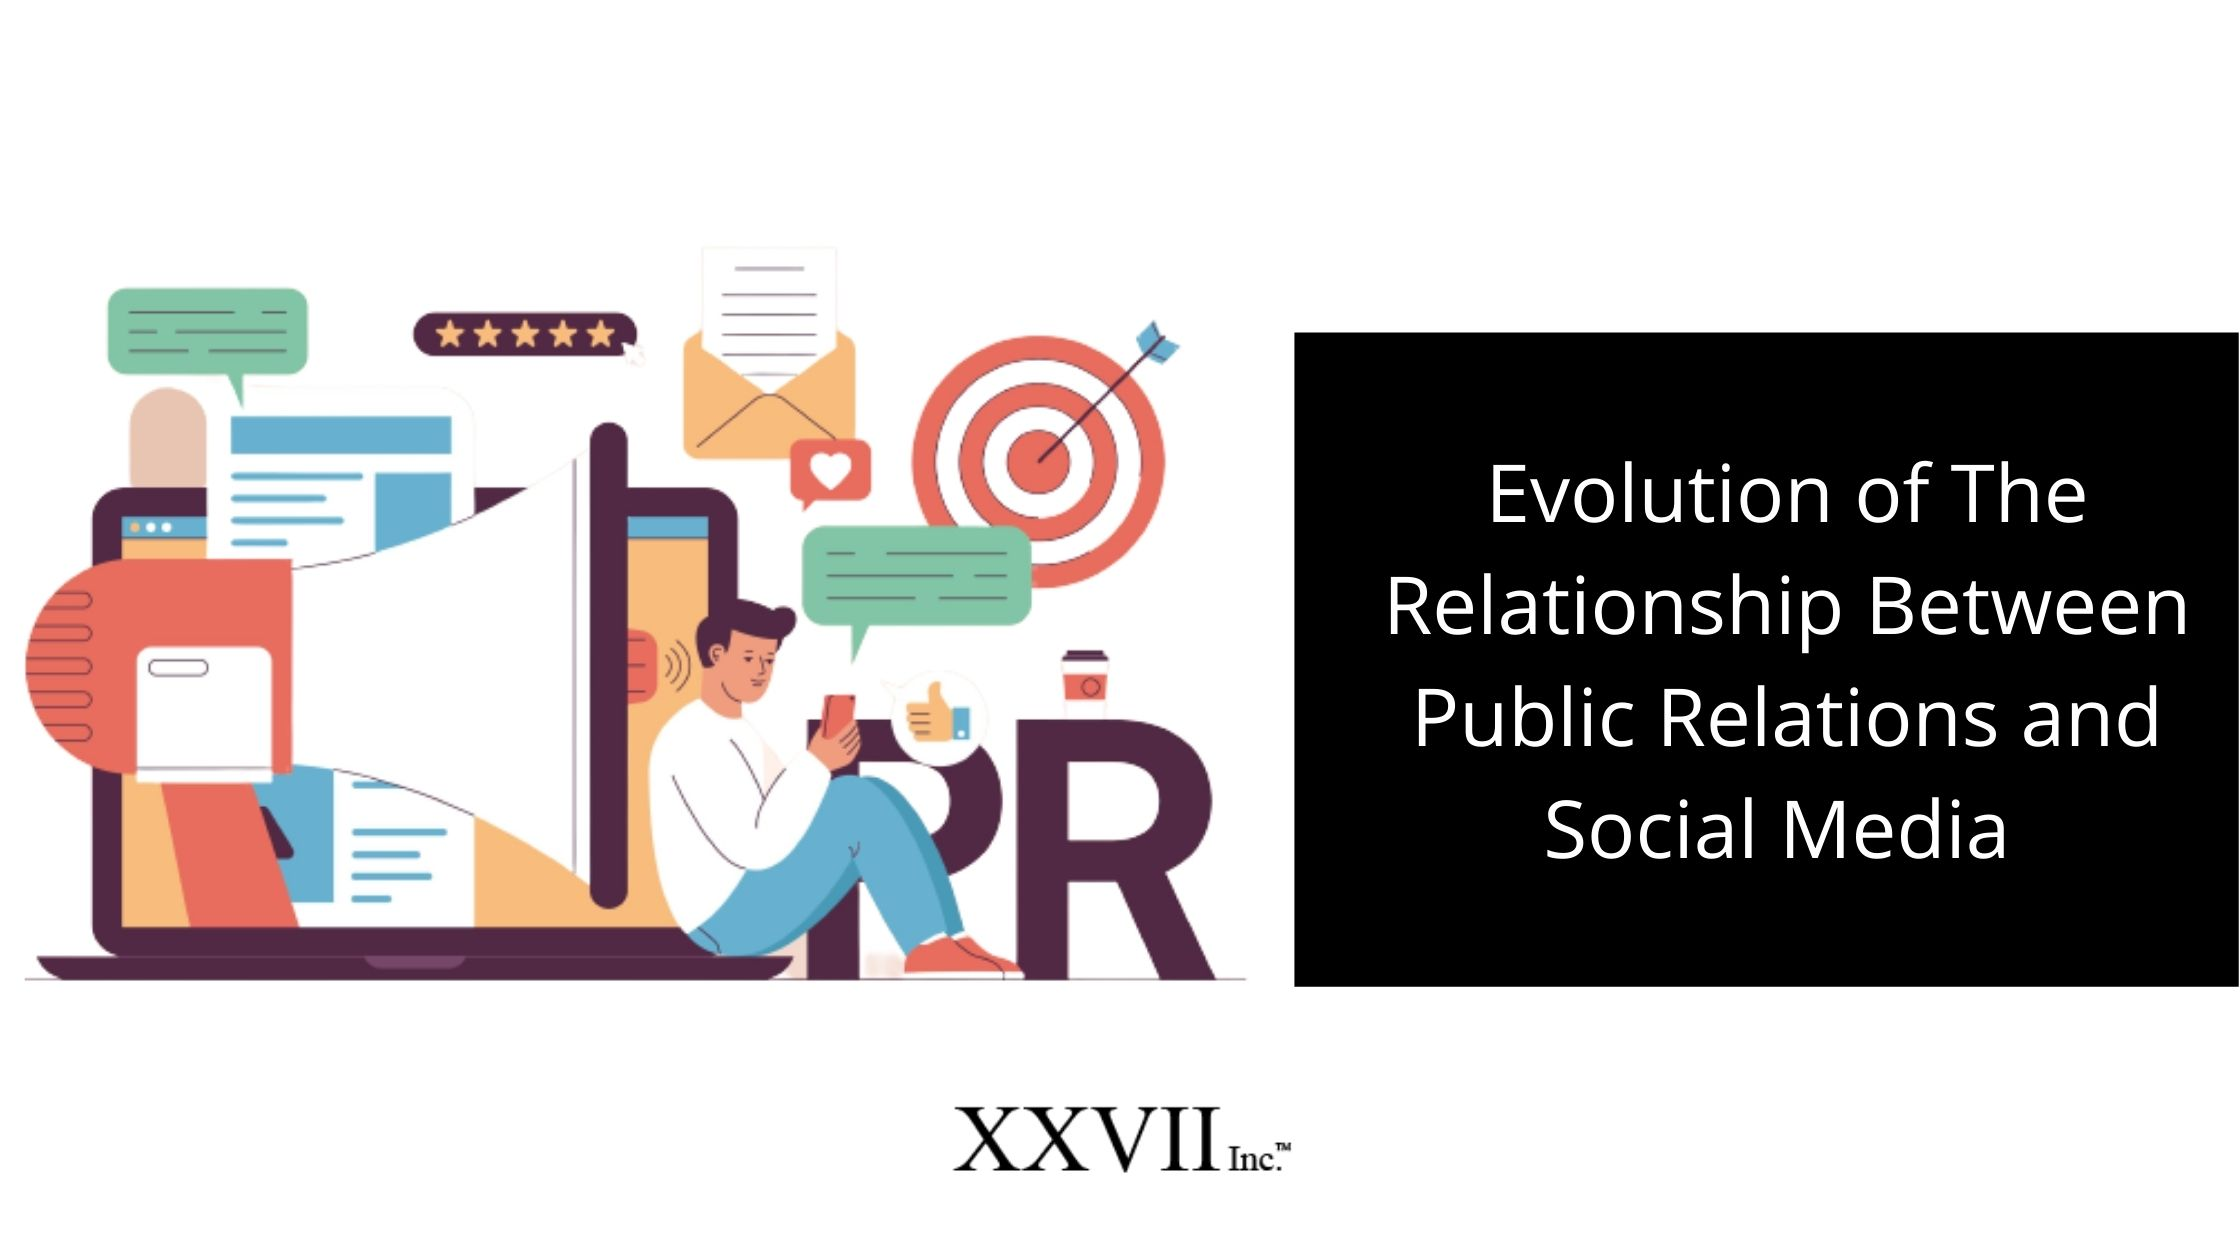 Evolution of the relationship between Public Relations and Social Media: